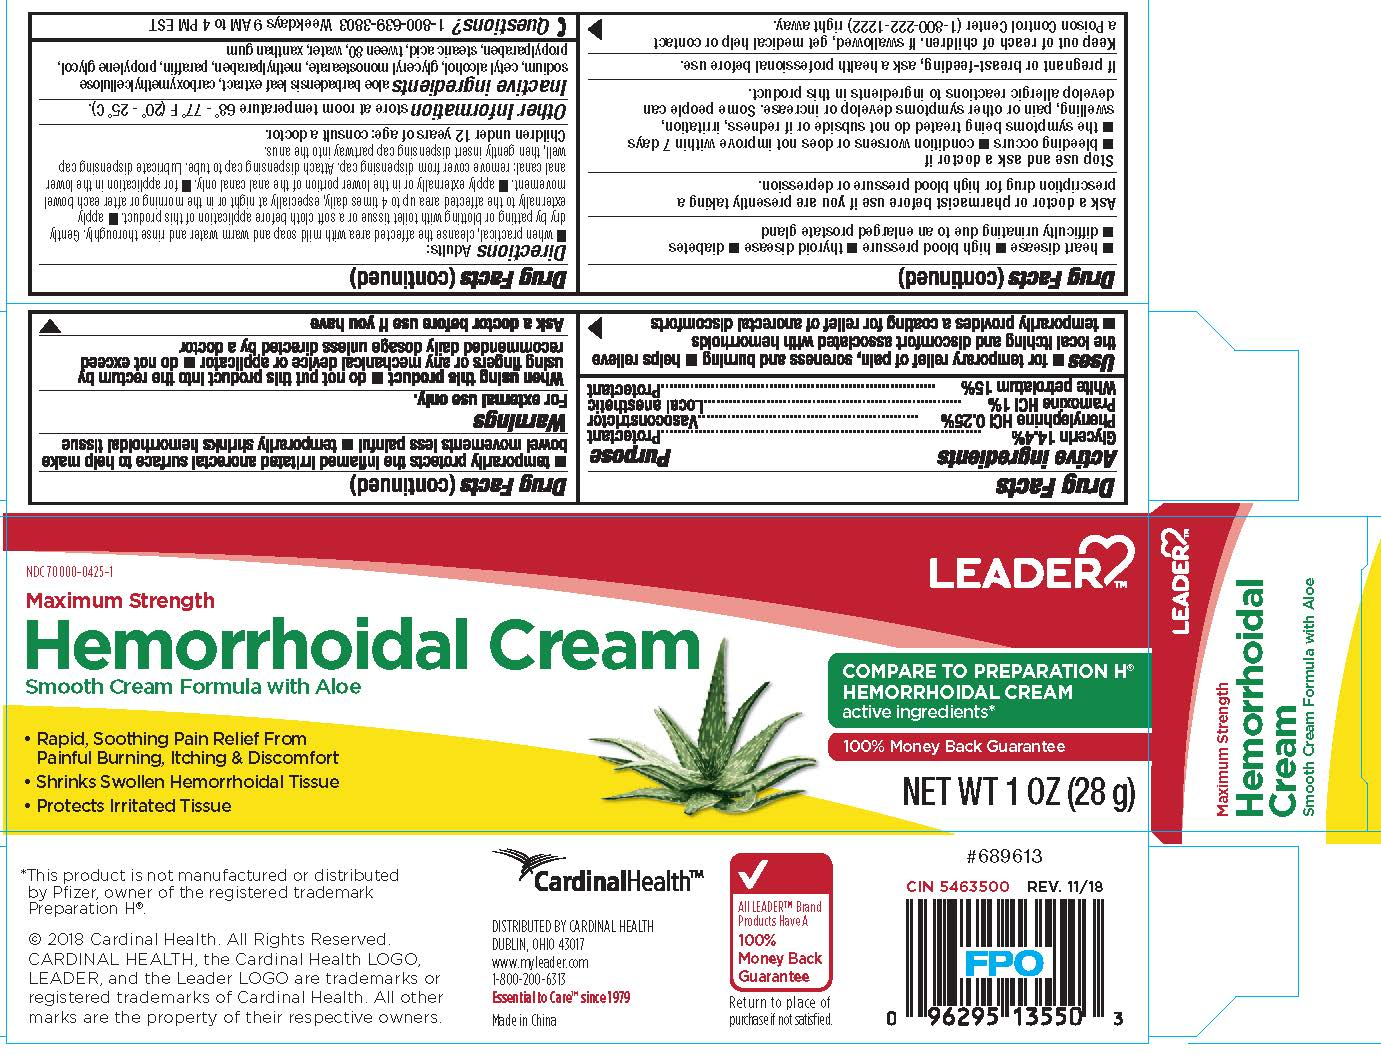 Hemorrhoidal Cream Package